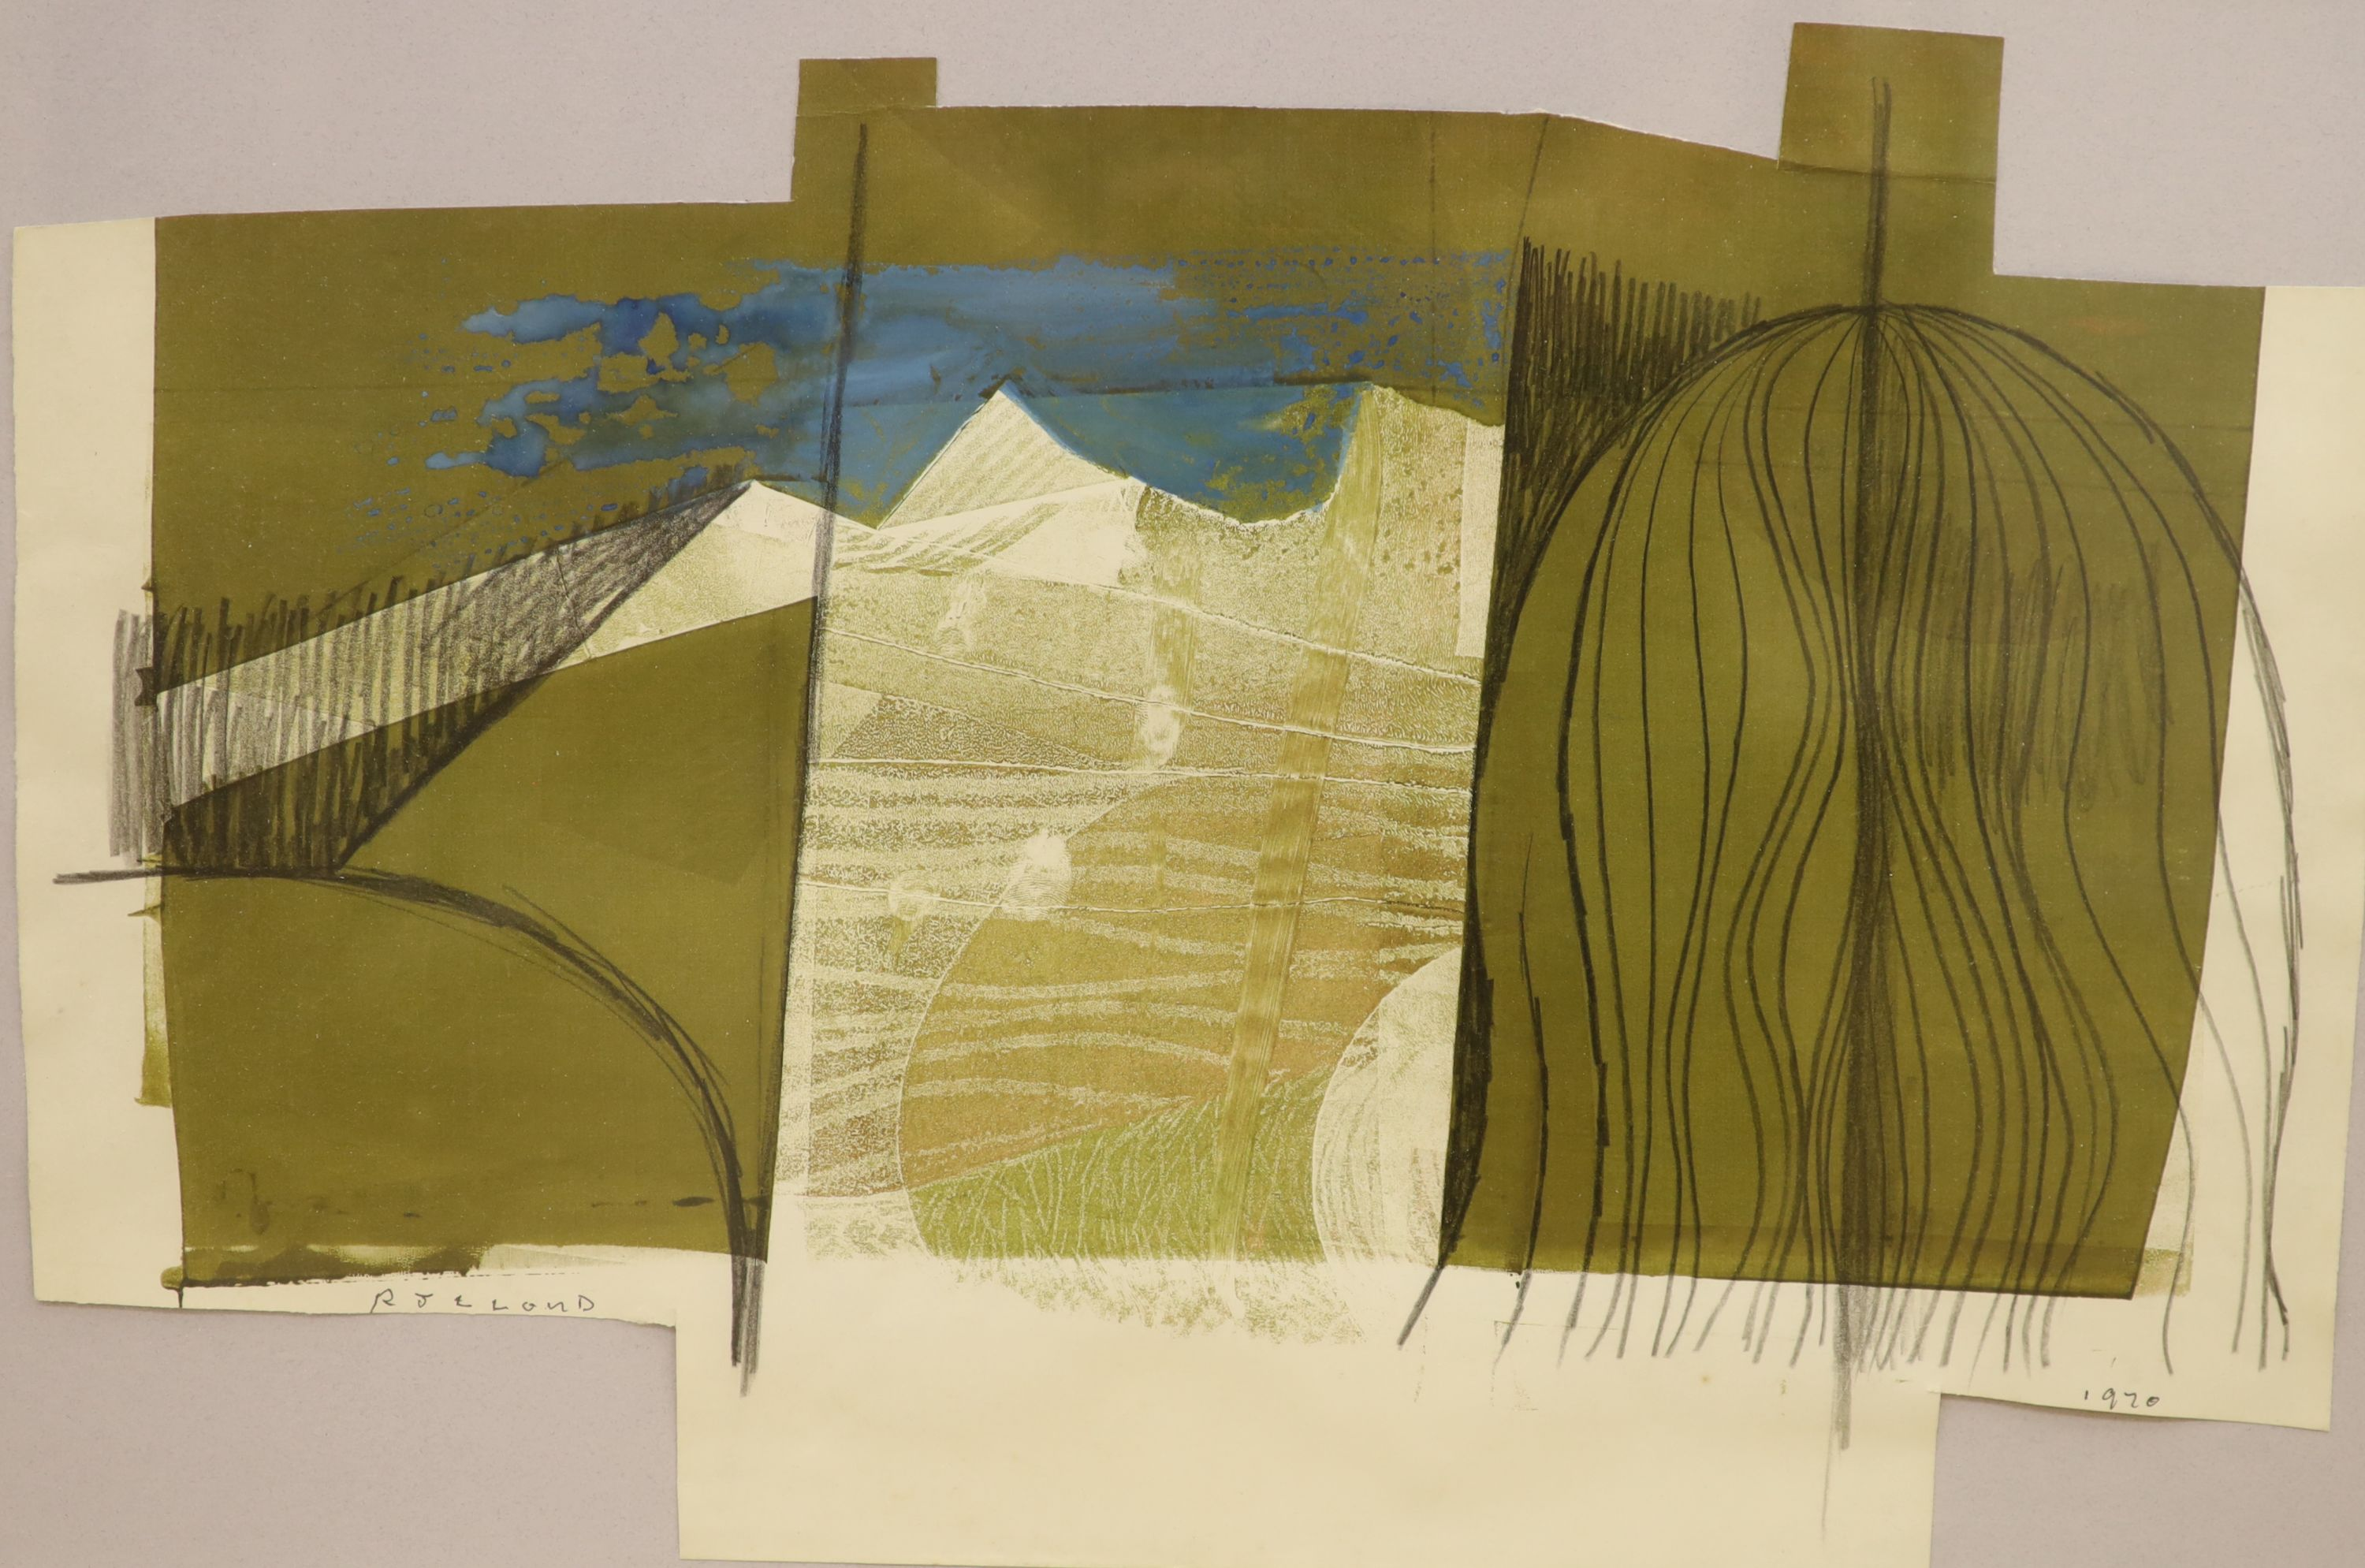 R. J. Lloyd, mixed media, Abstract landscape, signed and dated 1970, 35 x 51cm